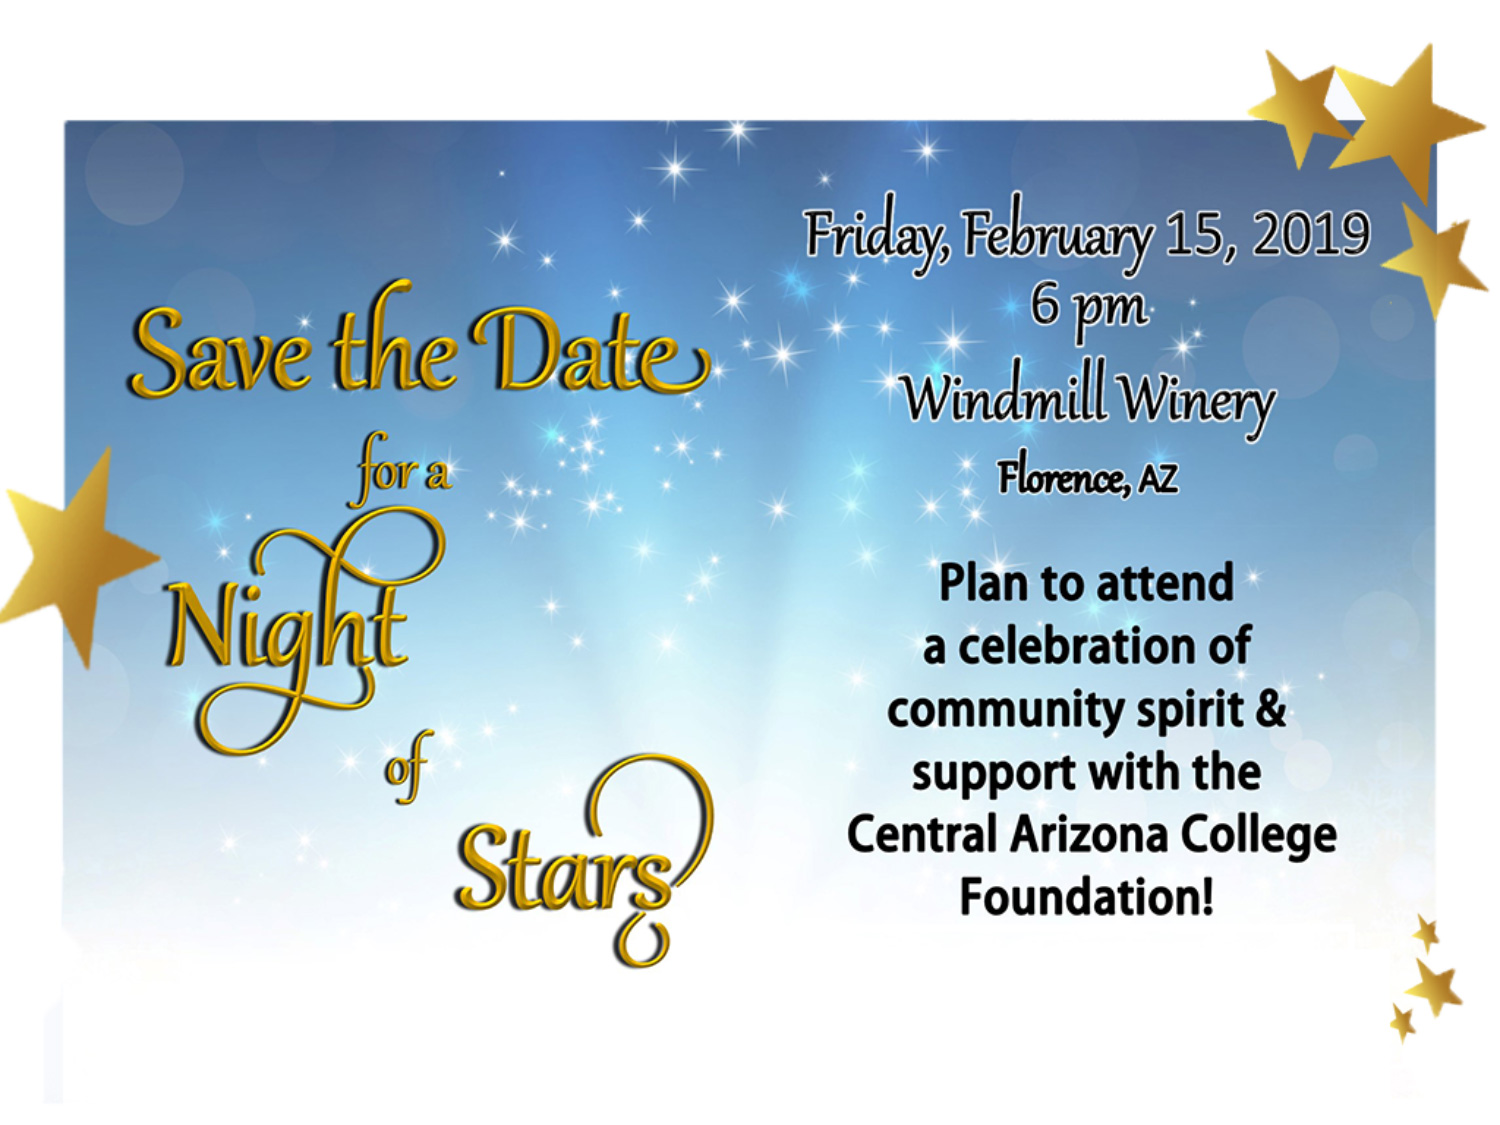 Save the date for the event on Friday, February 15, 2019 at 6 p.m. at the Windmill Winery in Florence, AZ. Come support the Central Arizona College Foundation!